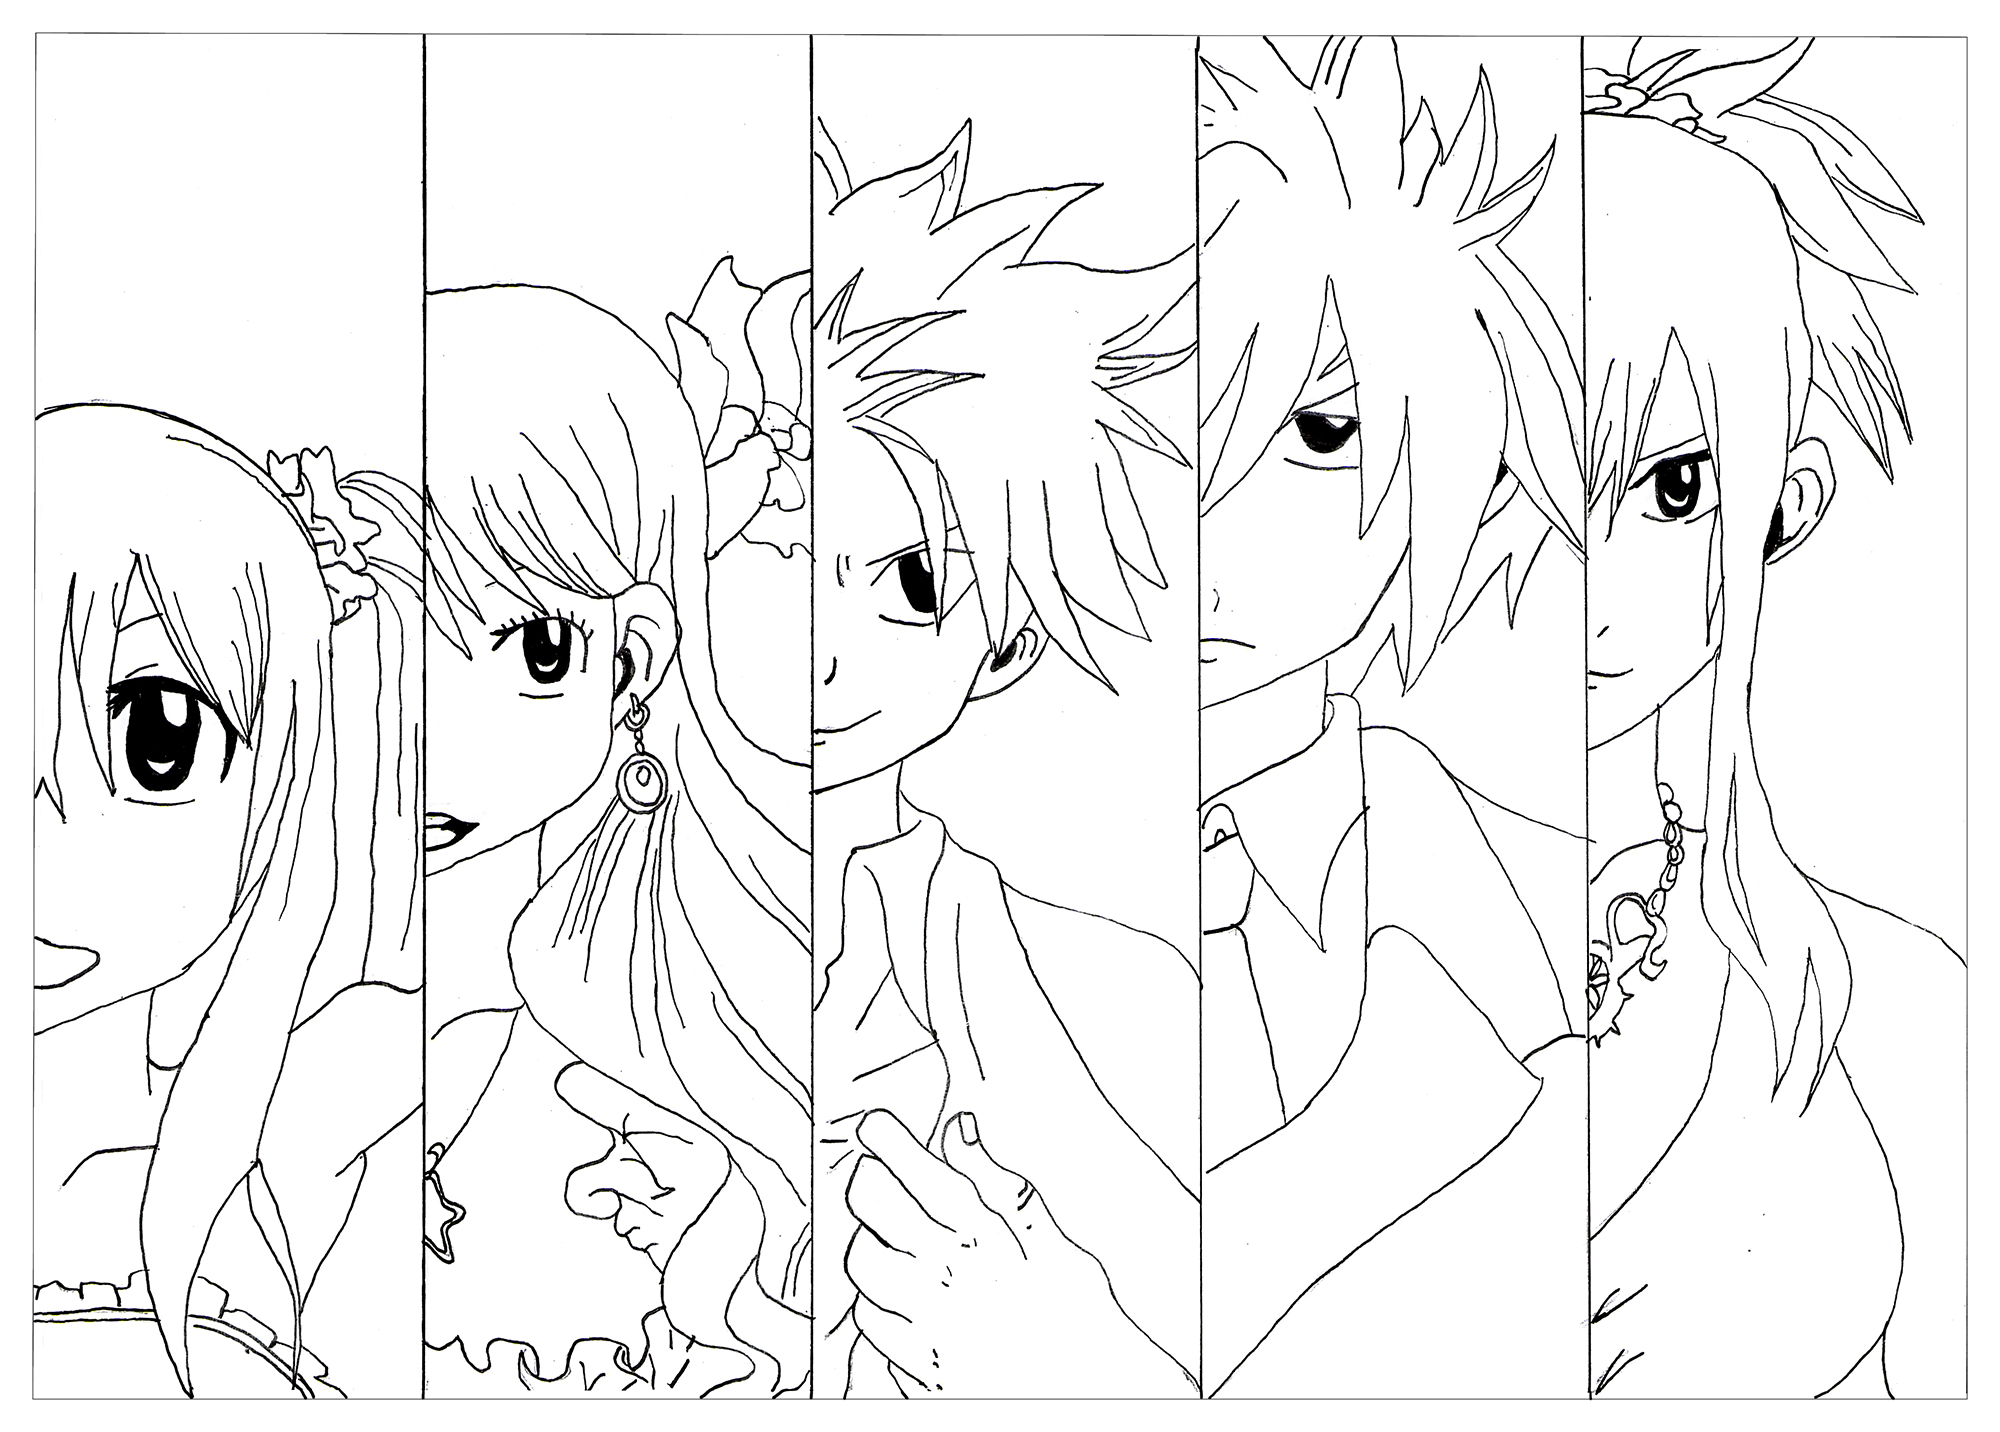 Coloring Pages Anime Manga Anime Coloring Pages For Adults